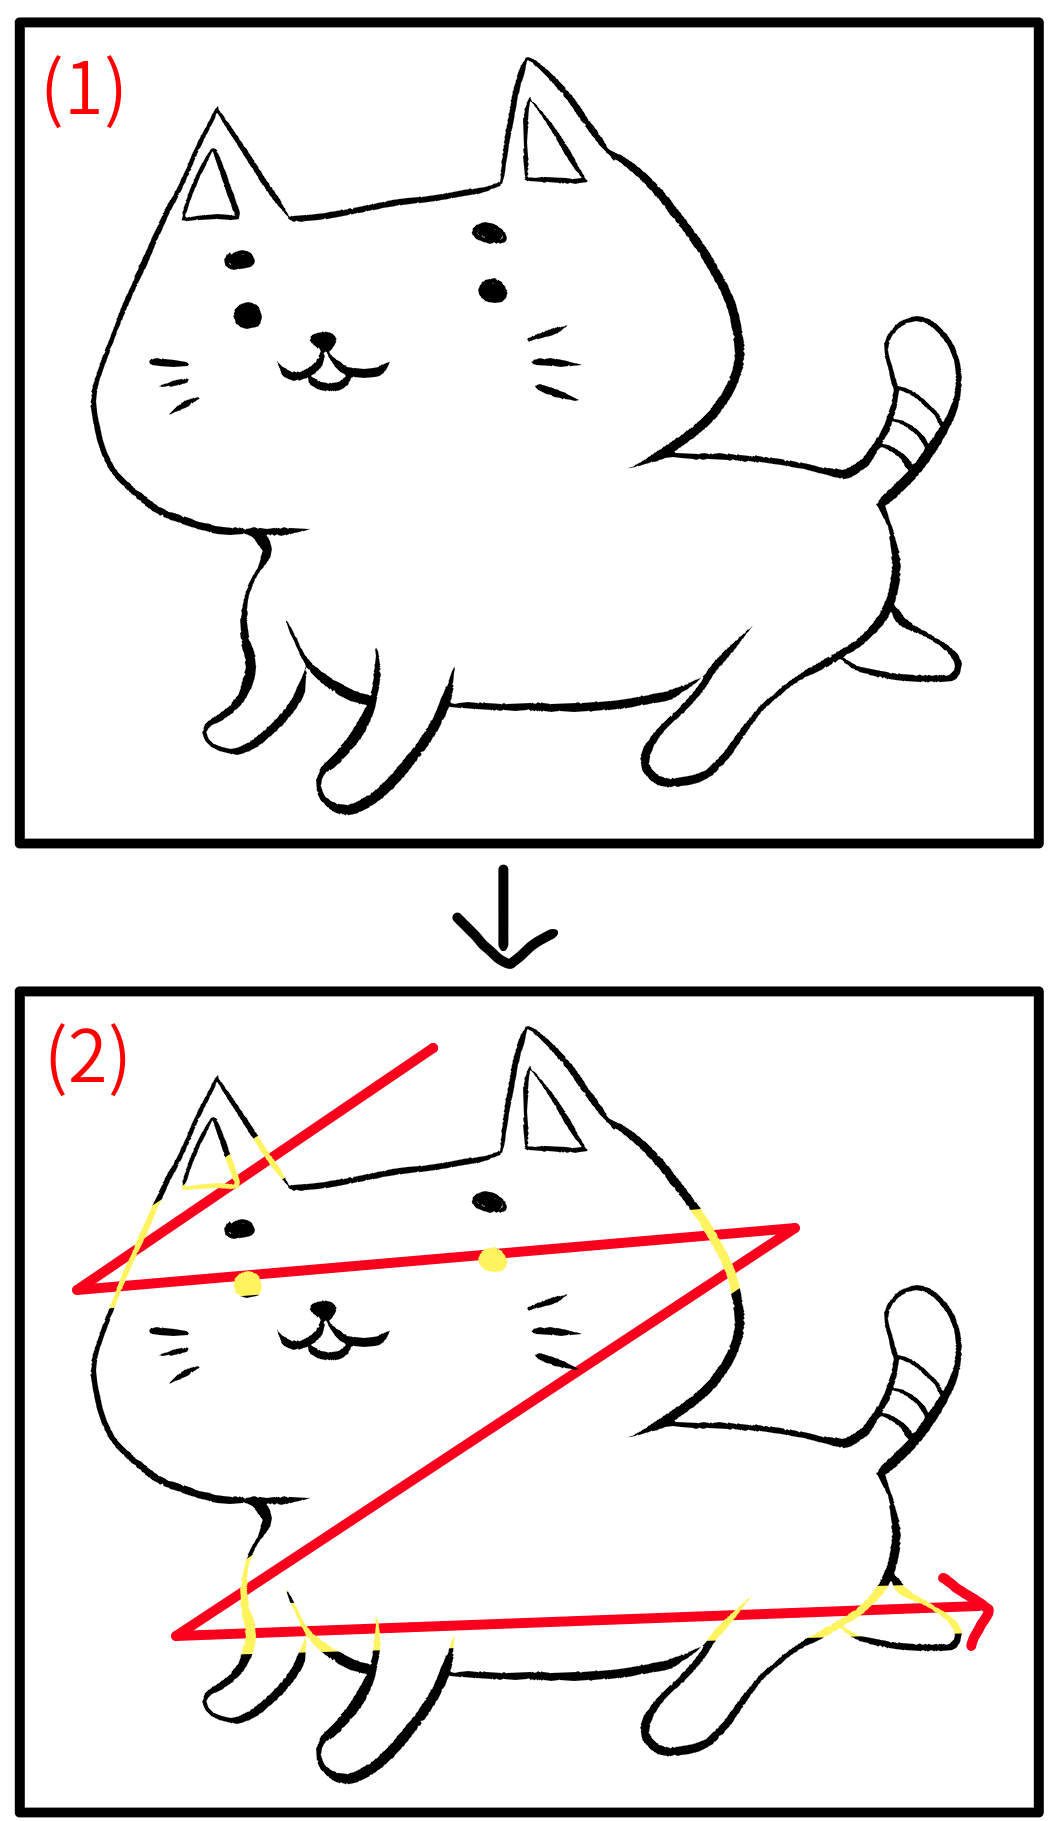 Try changing the color of the line drawing